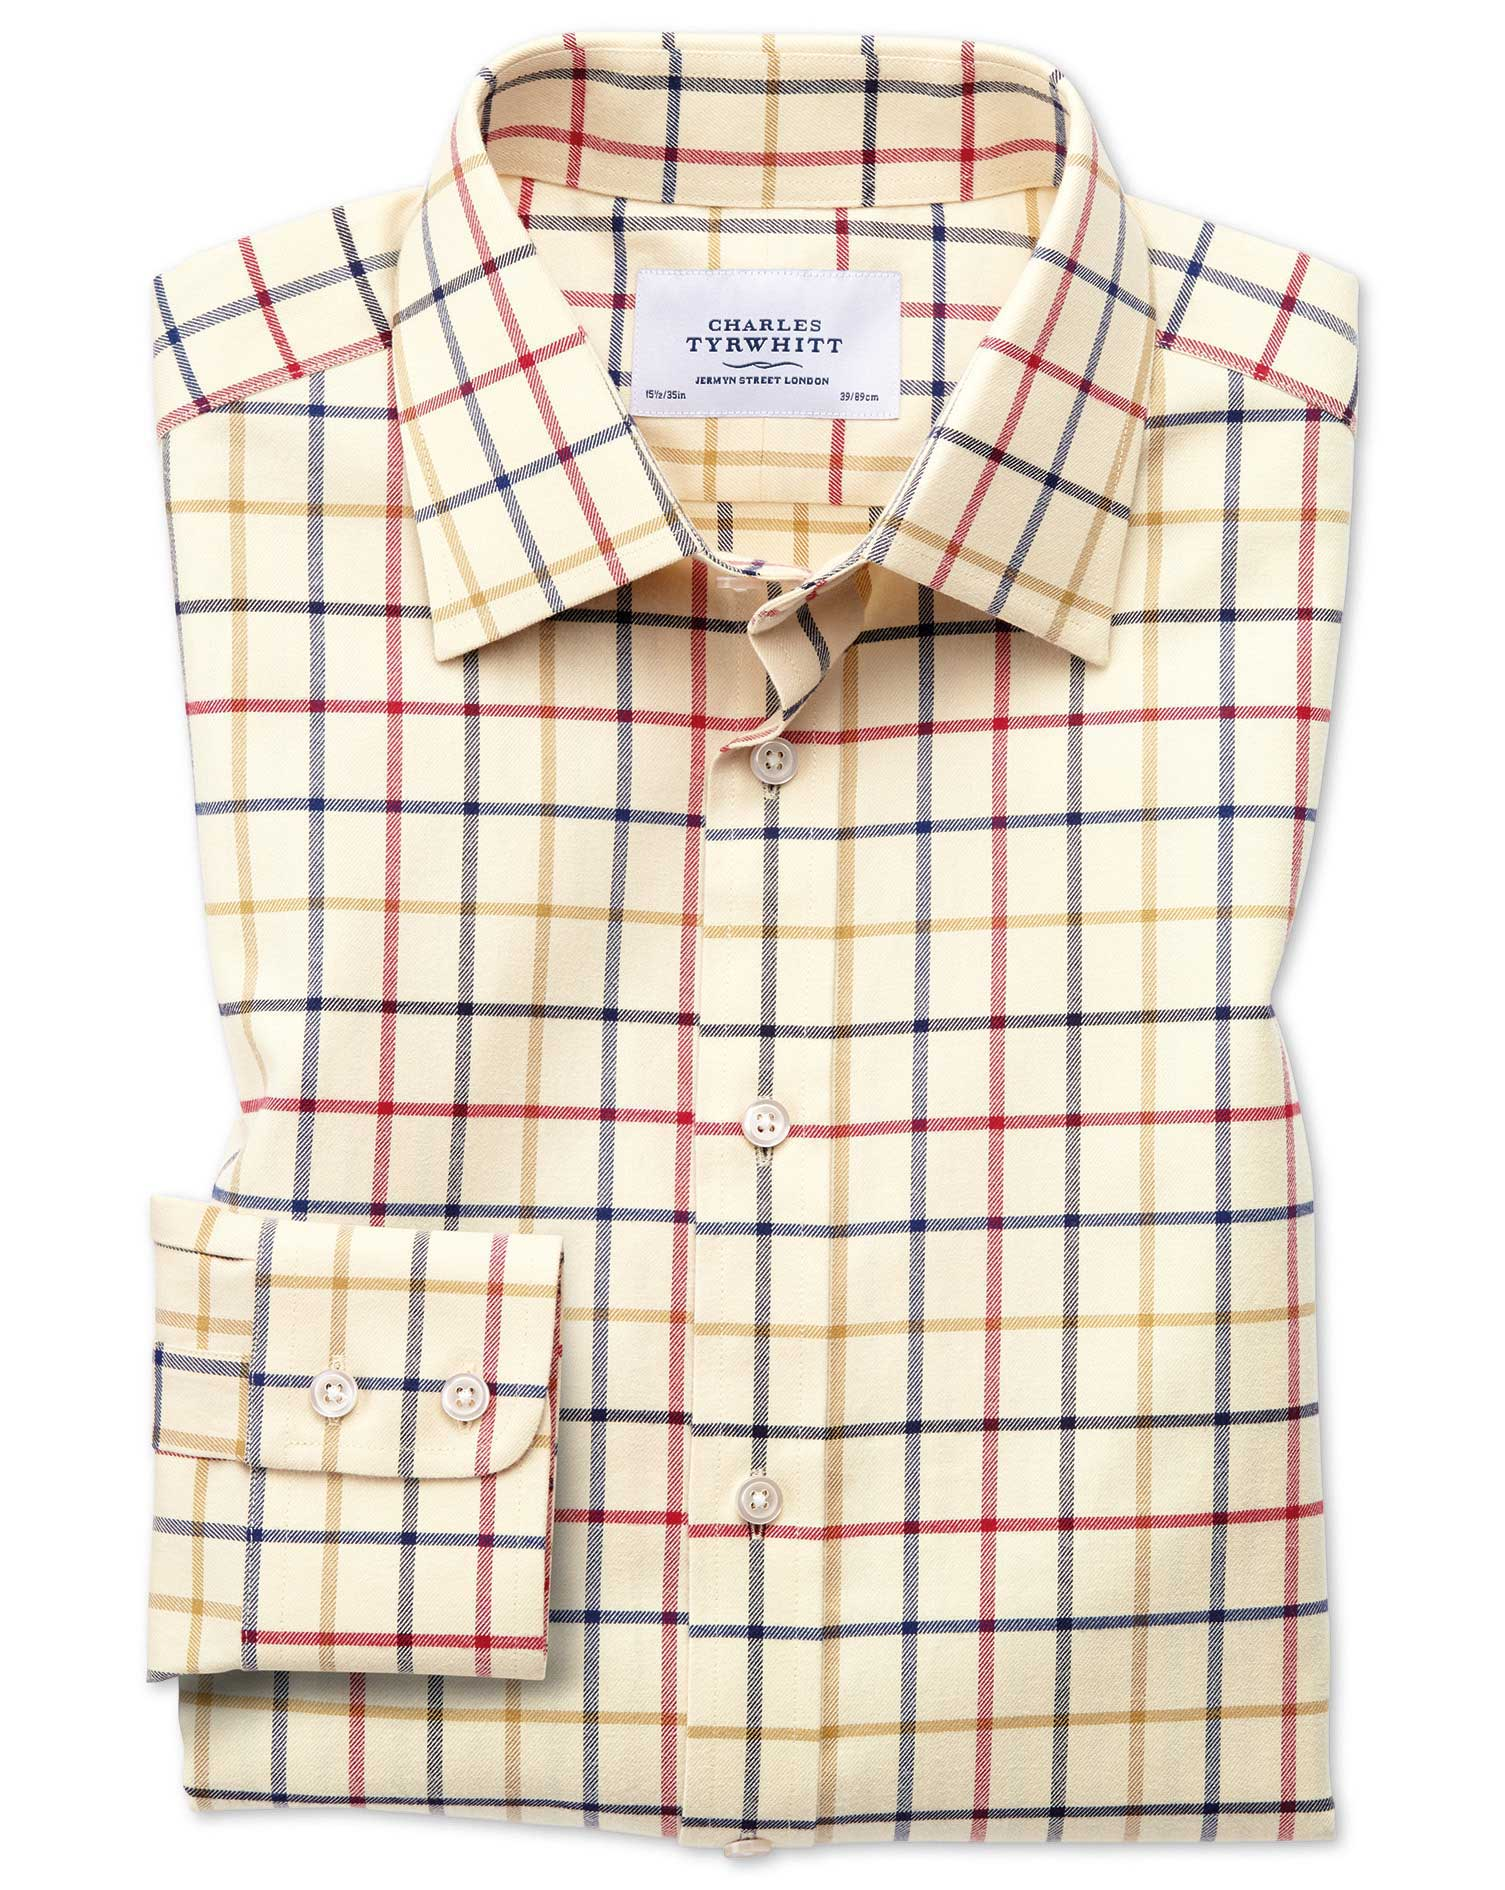 Classic Fit Country Check Red and Blue Cotton Formal Shirt Single Cuff Size 15.5/34 by Charles Tyrwh